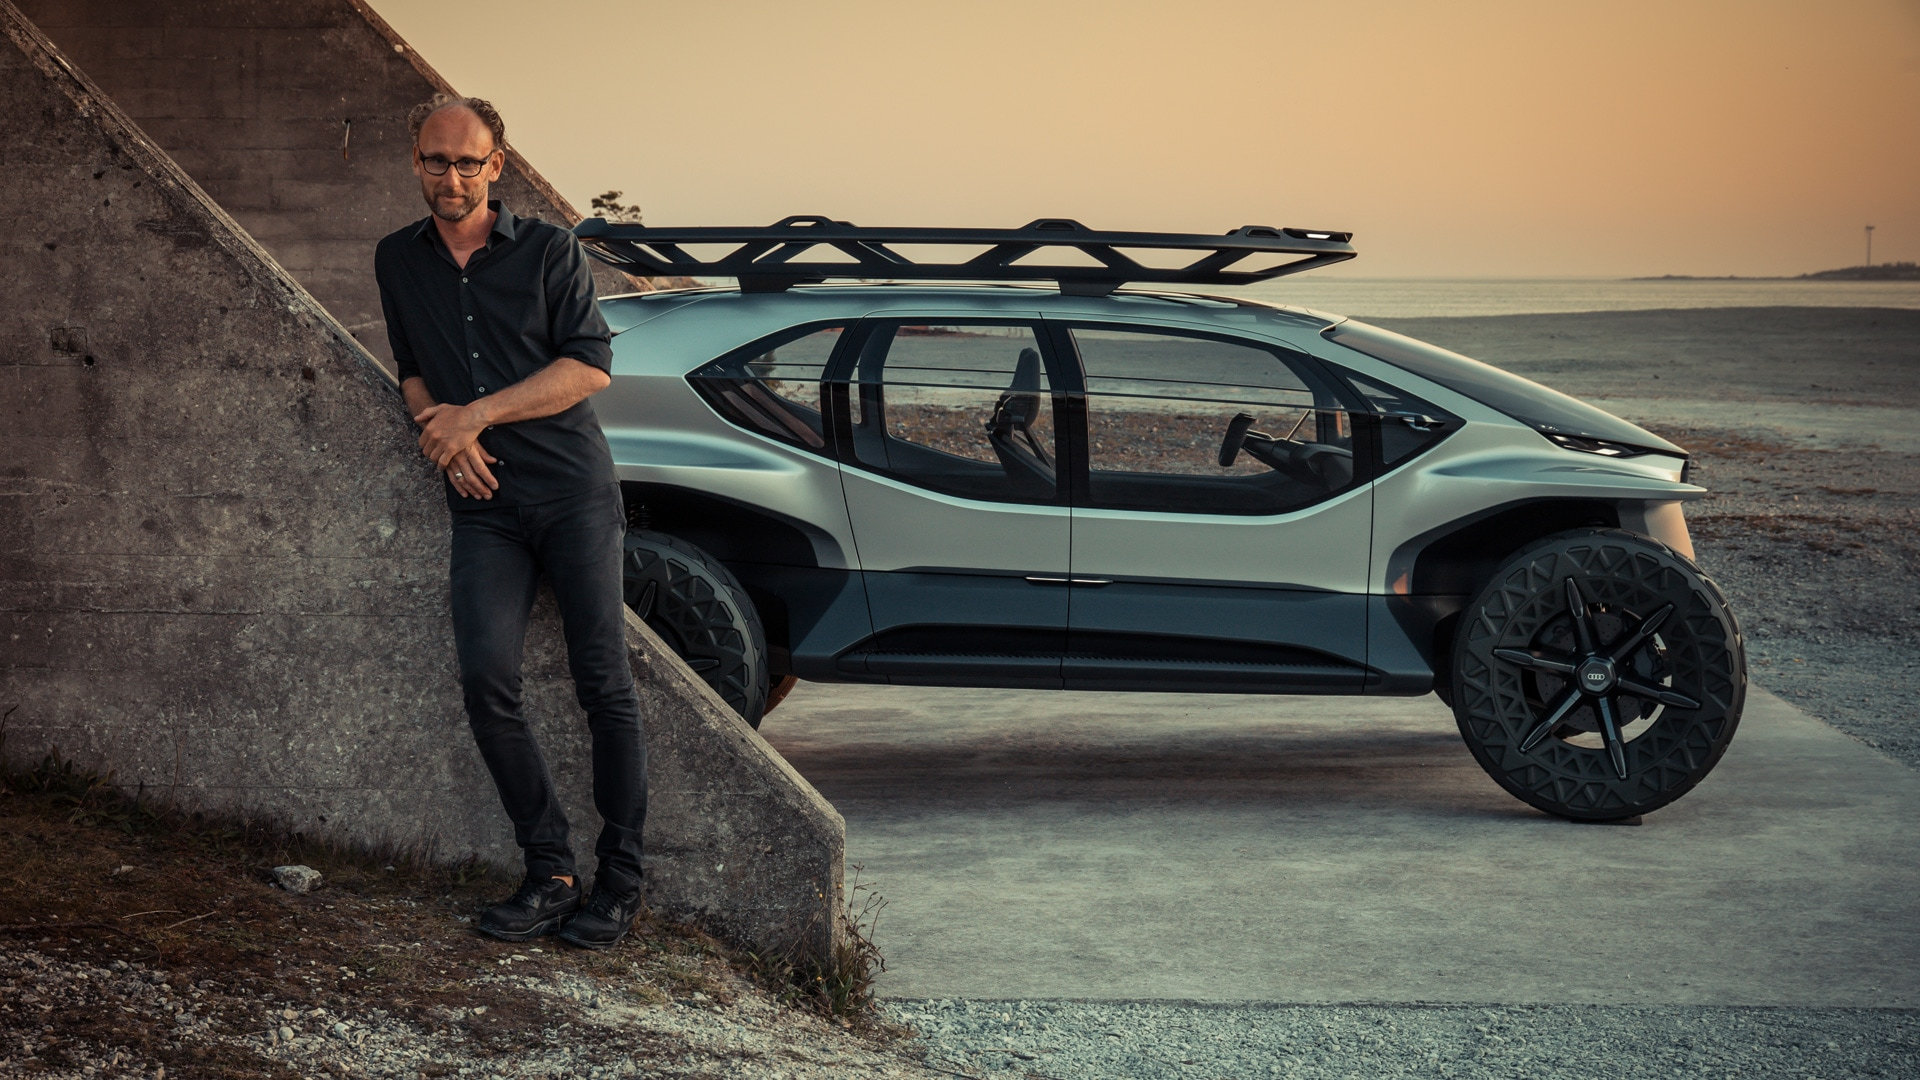 Marc Lichte, Head of Design at Audi, in front of the Audi AI:TRAIL concept car